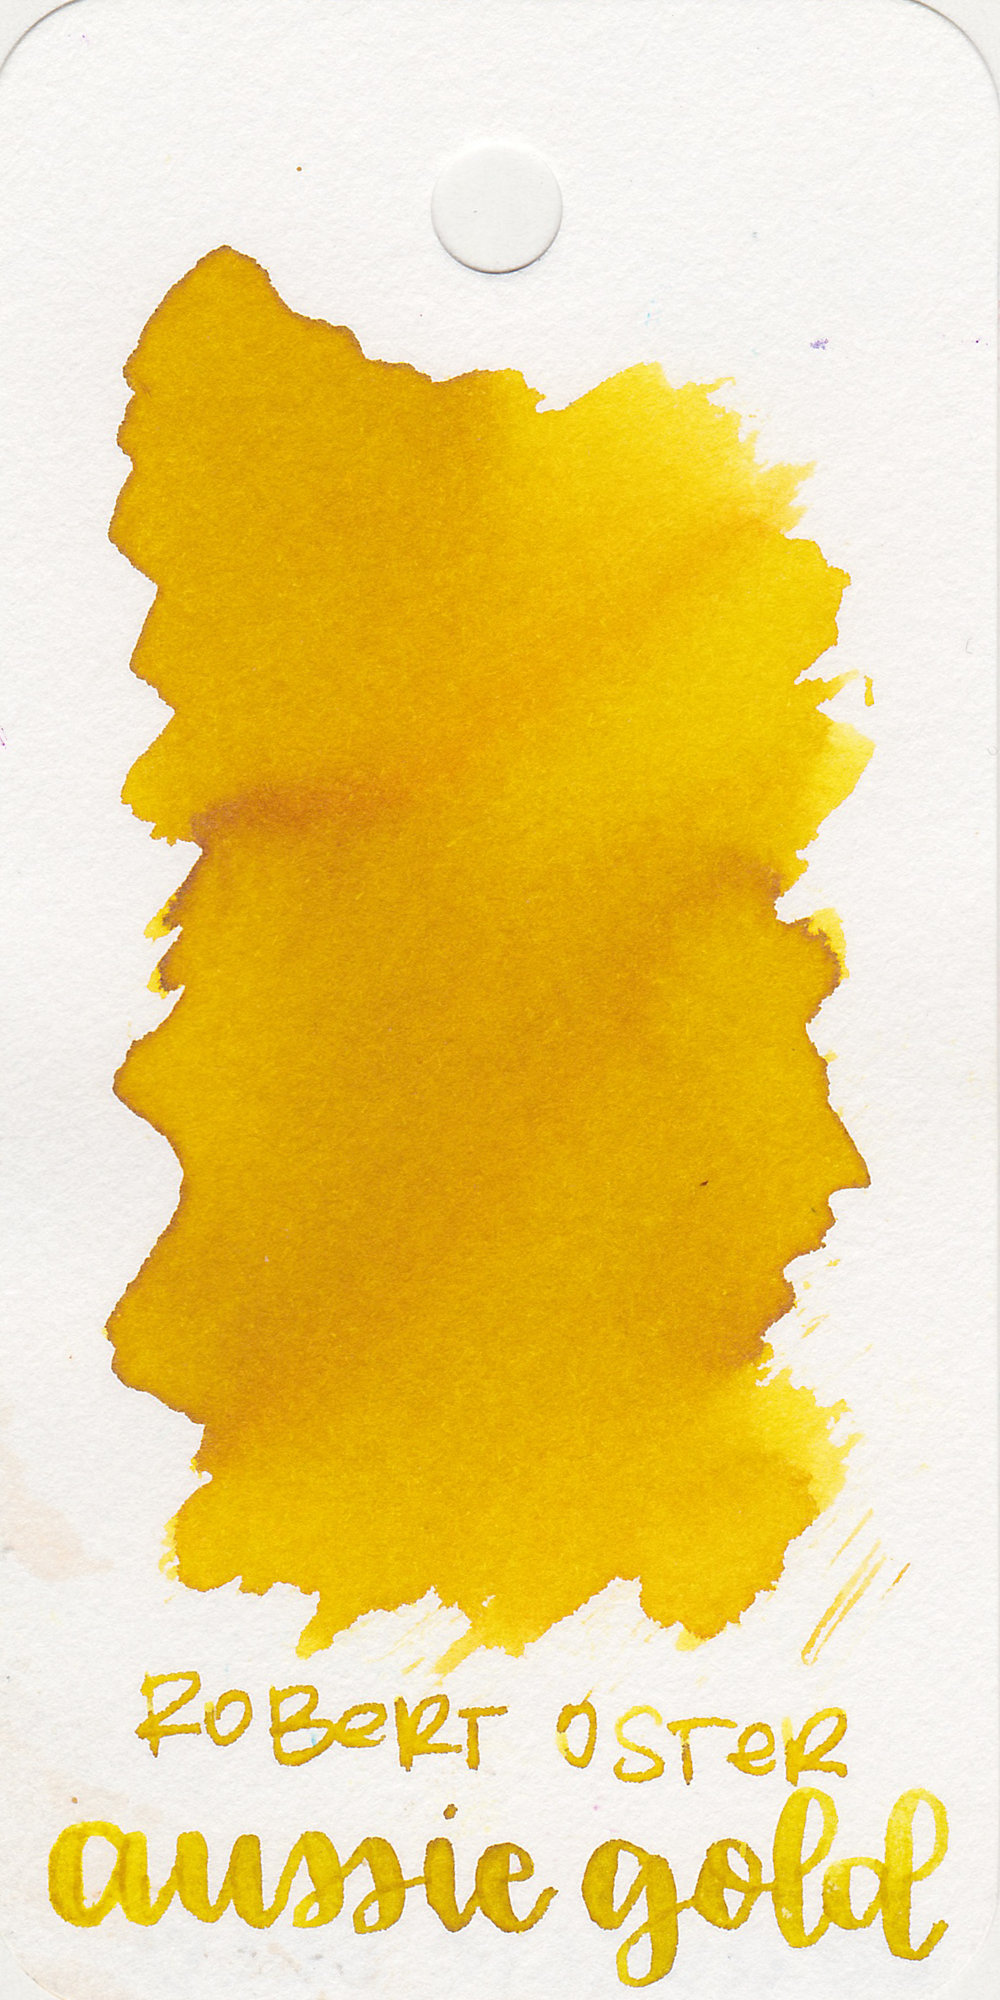 The color: - Aussie Gold is a dark yellow, it reminds me of 70's yellow.